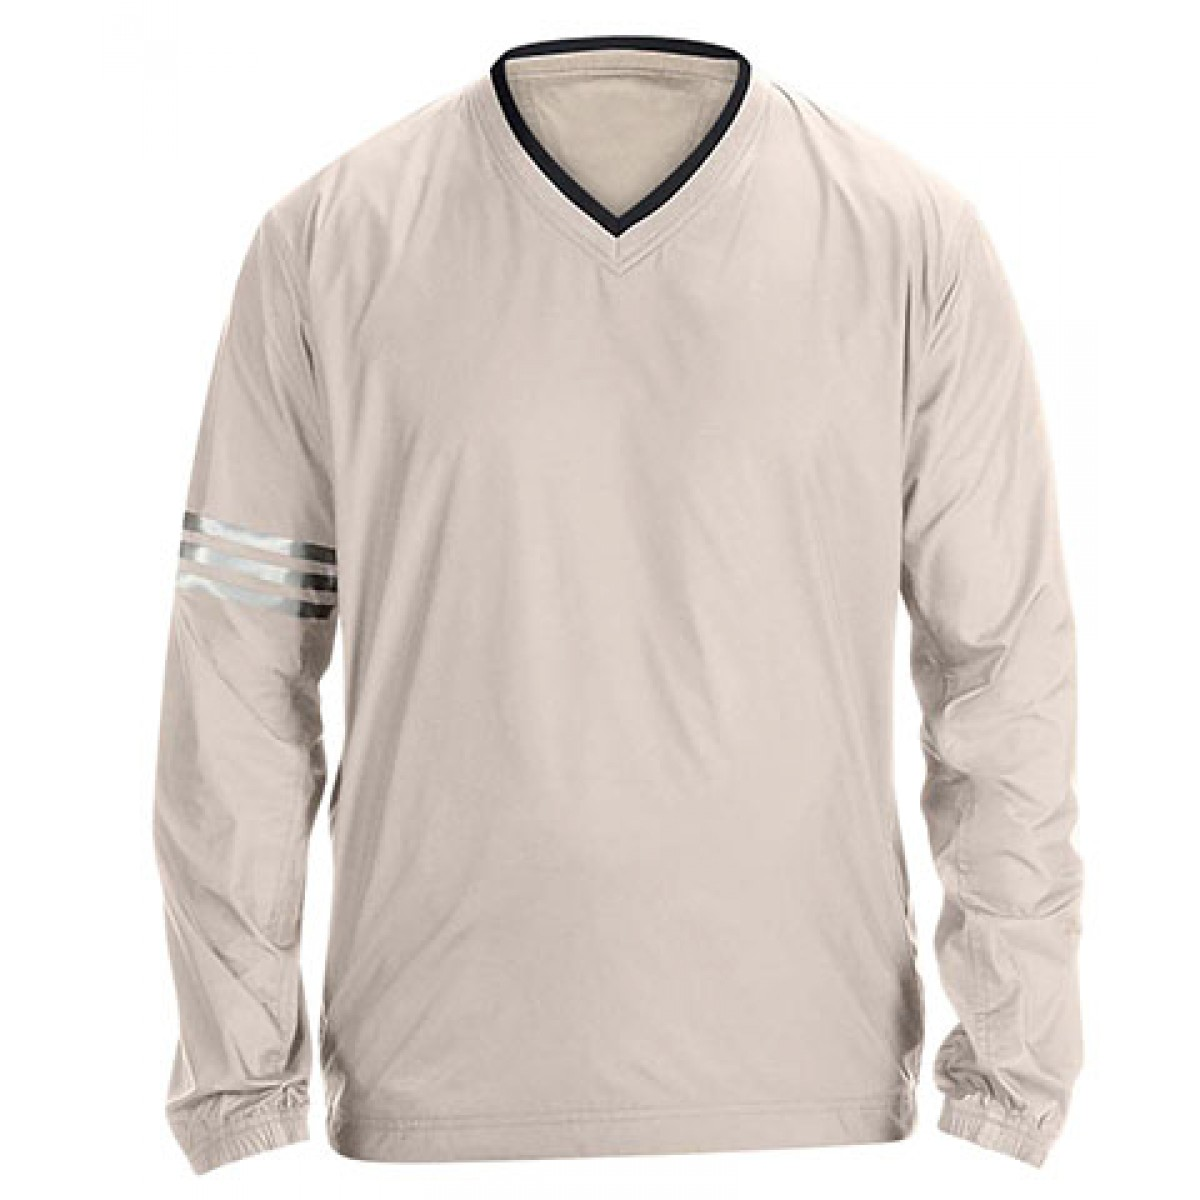 Adidas ClimaLite V-Neck Long Sleeve Wind Shirt-Brown-S